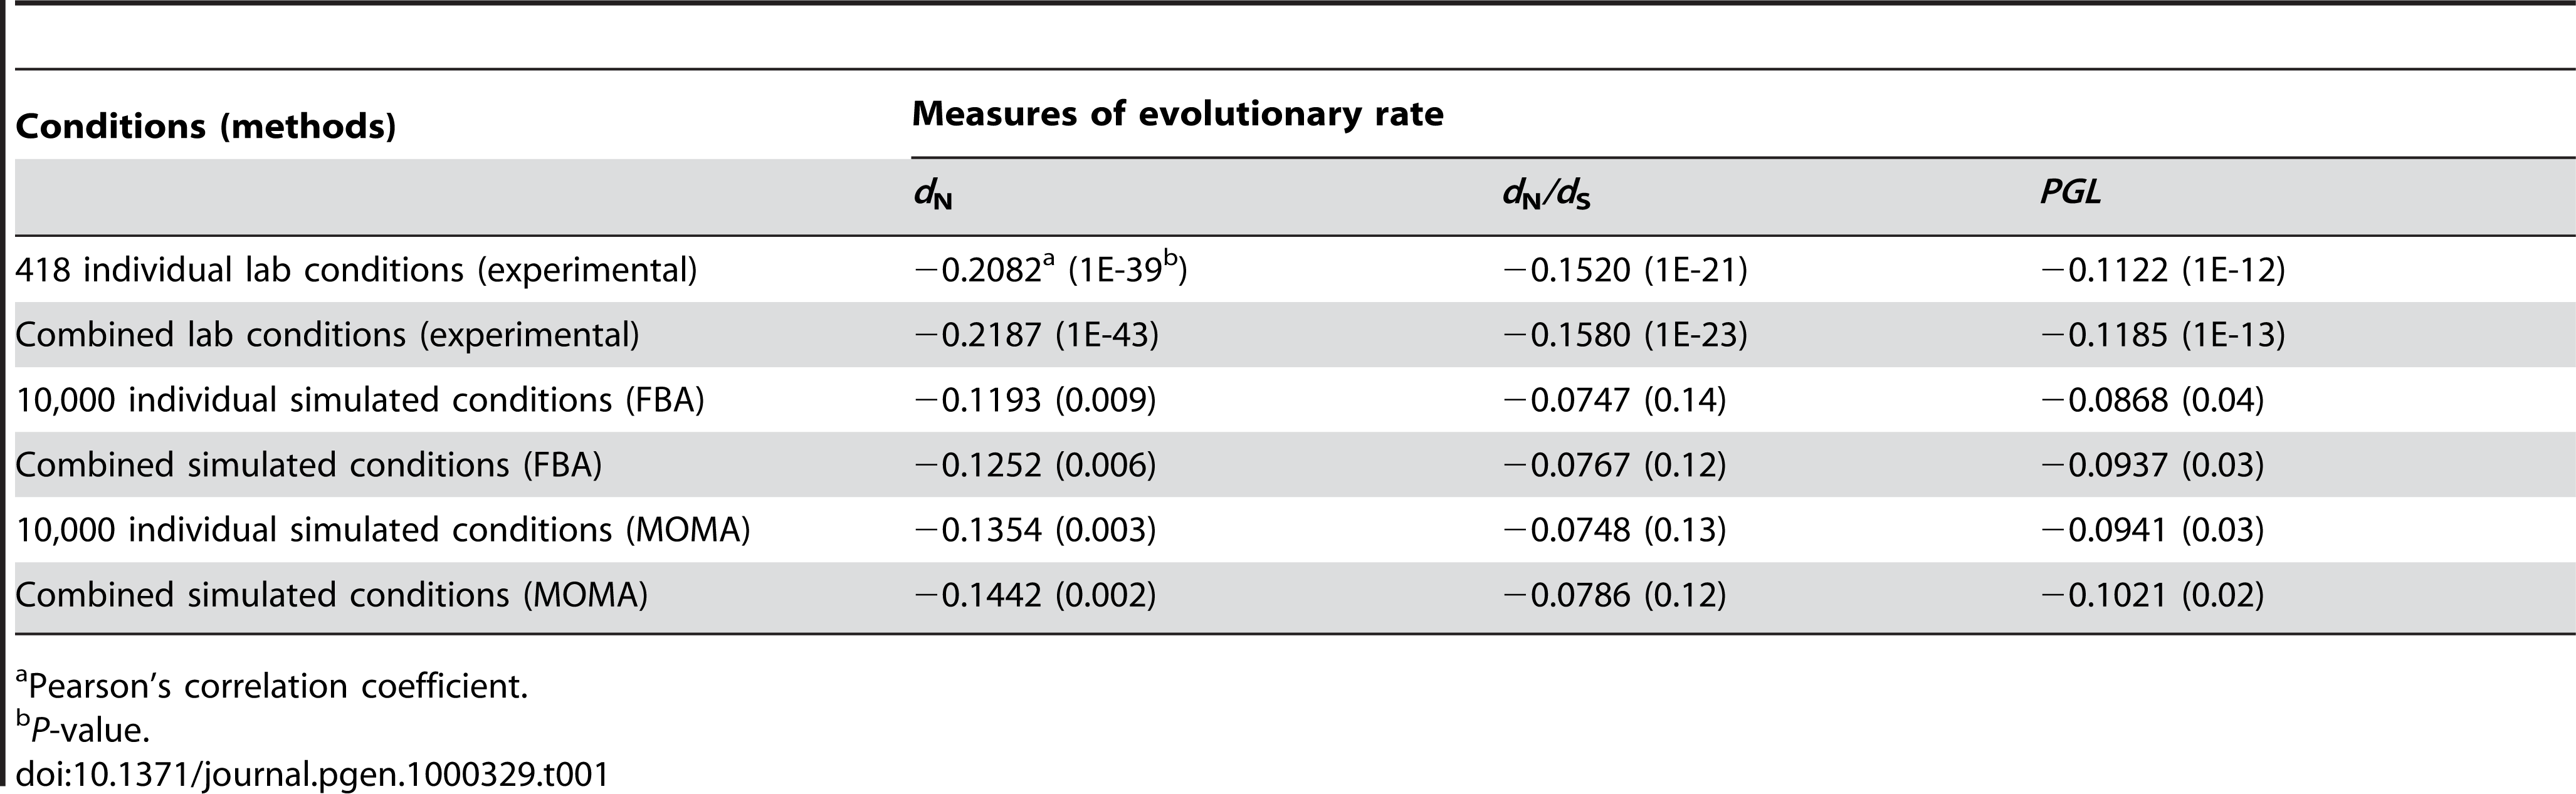 Strongest correlations between gene evolutionary rate and importance measured at different conditions.